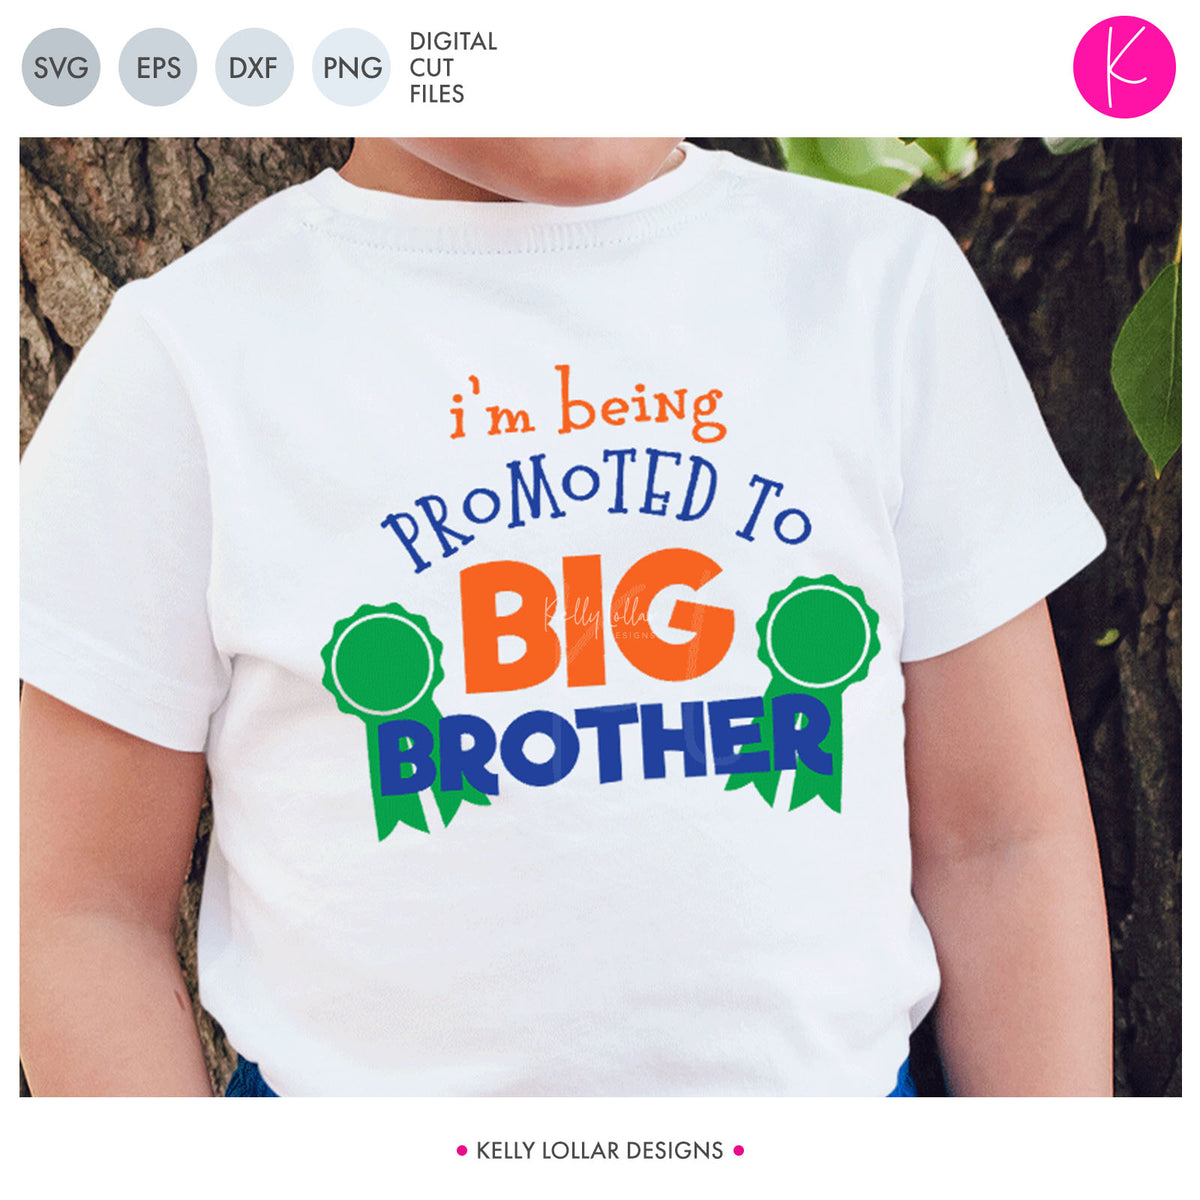 I'm Being Promoted to Big Brother | SVG DXF EPS PNG Cut Files